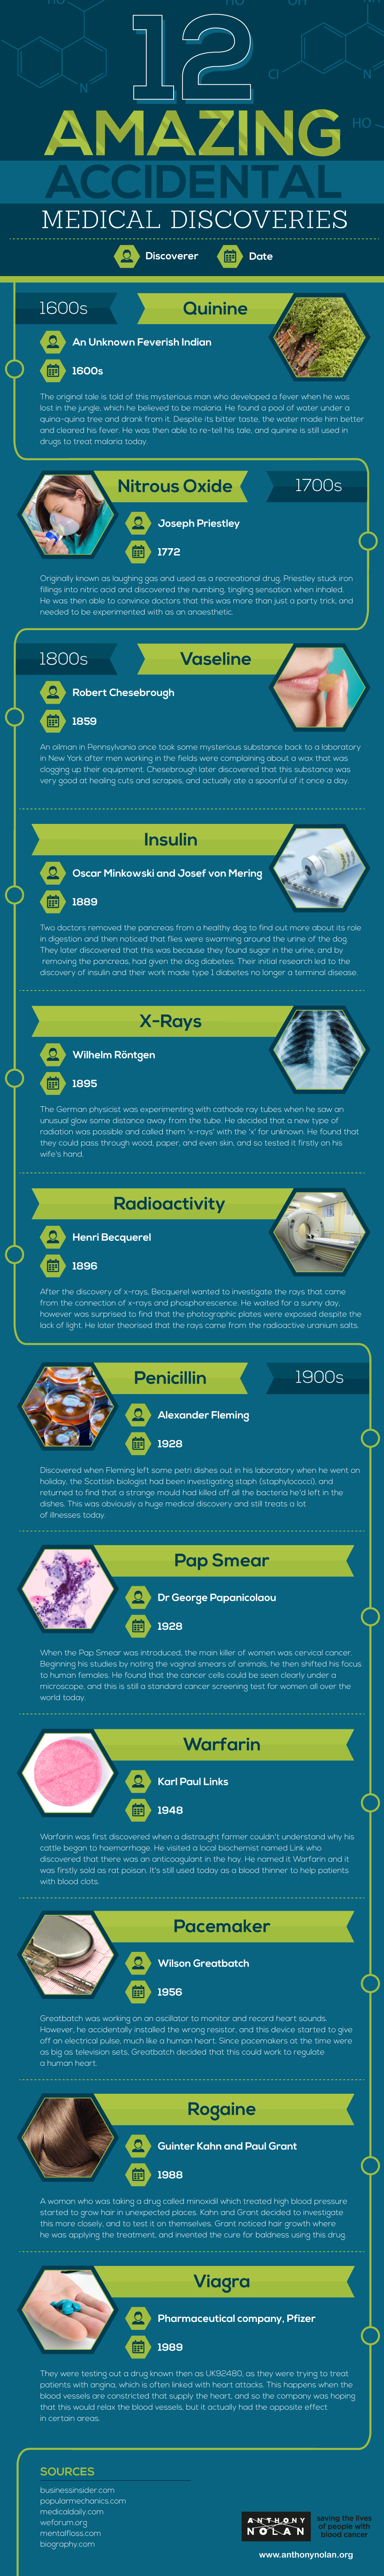 12 Amazing Accidental Medical Discoveries #Infographic